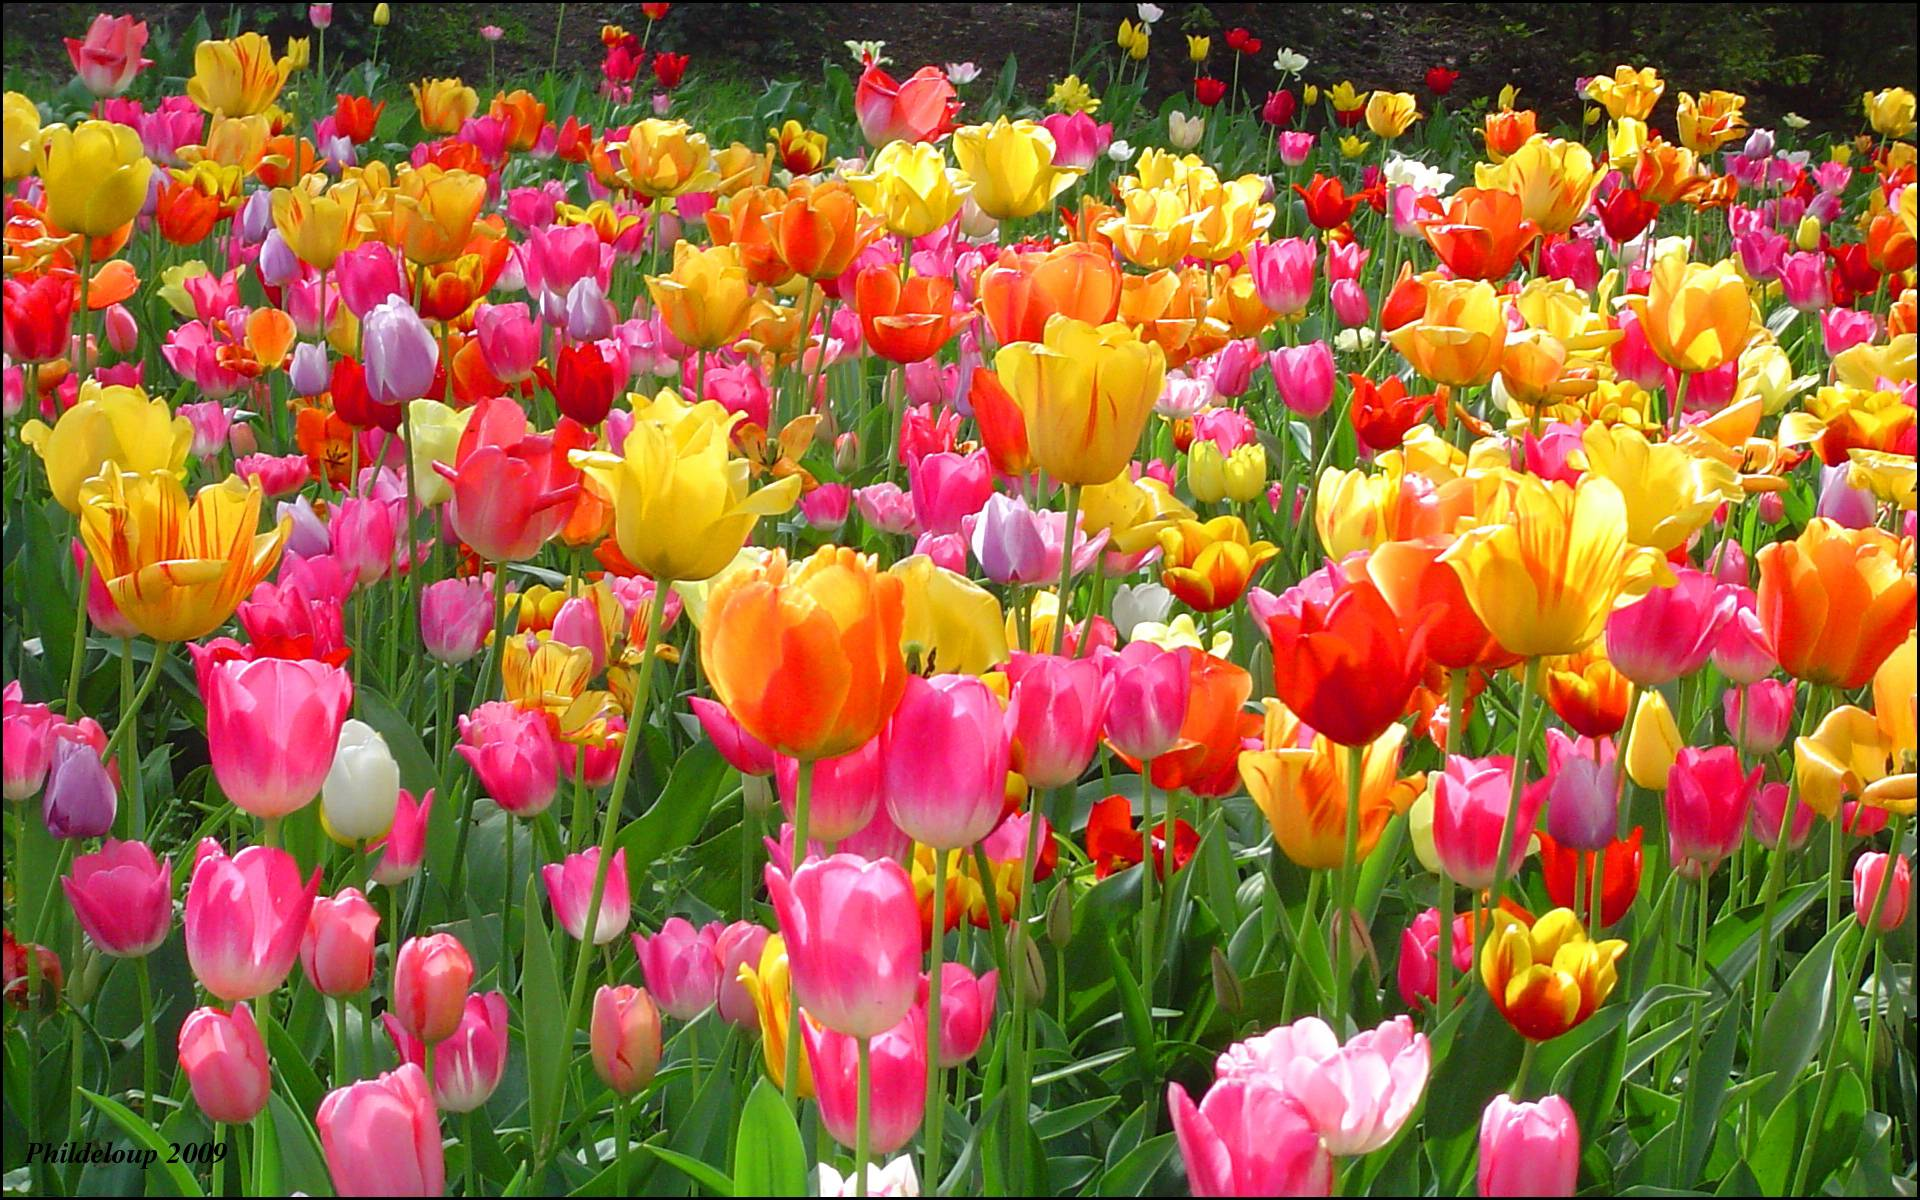 colorful tulips image